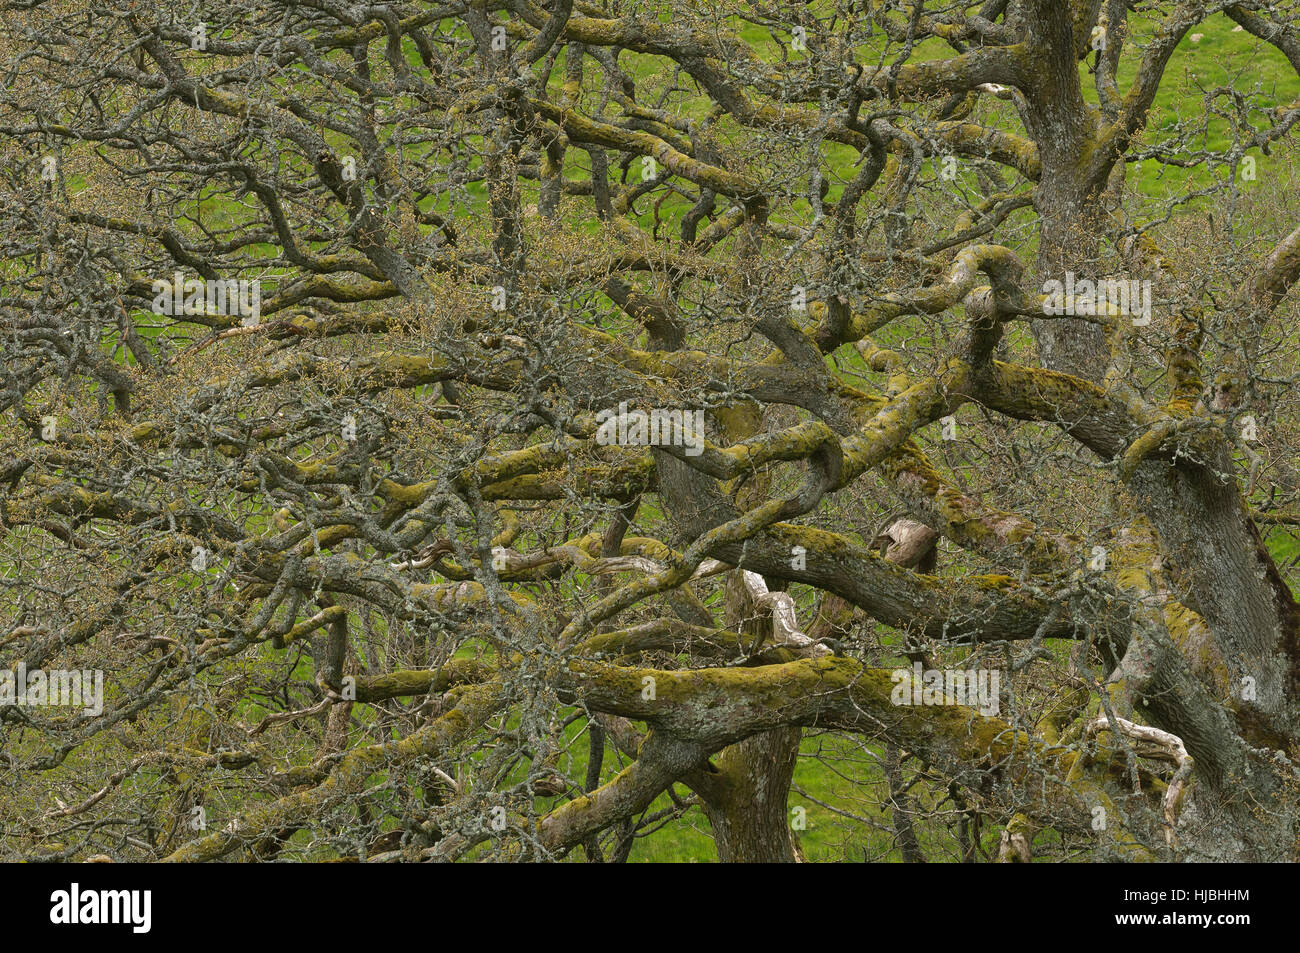 Sessile oak (Quercus petraea) woodland in spring. Gilfach nature reserve, Radnorshire, Wales. May. - Stock Image